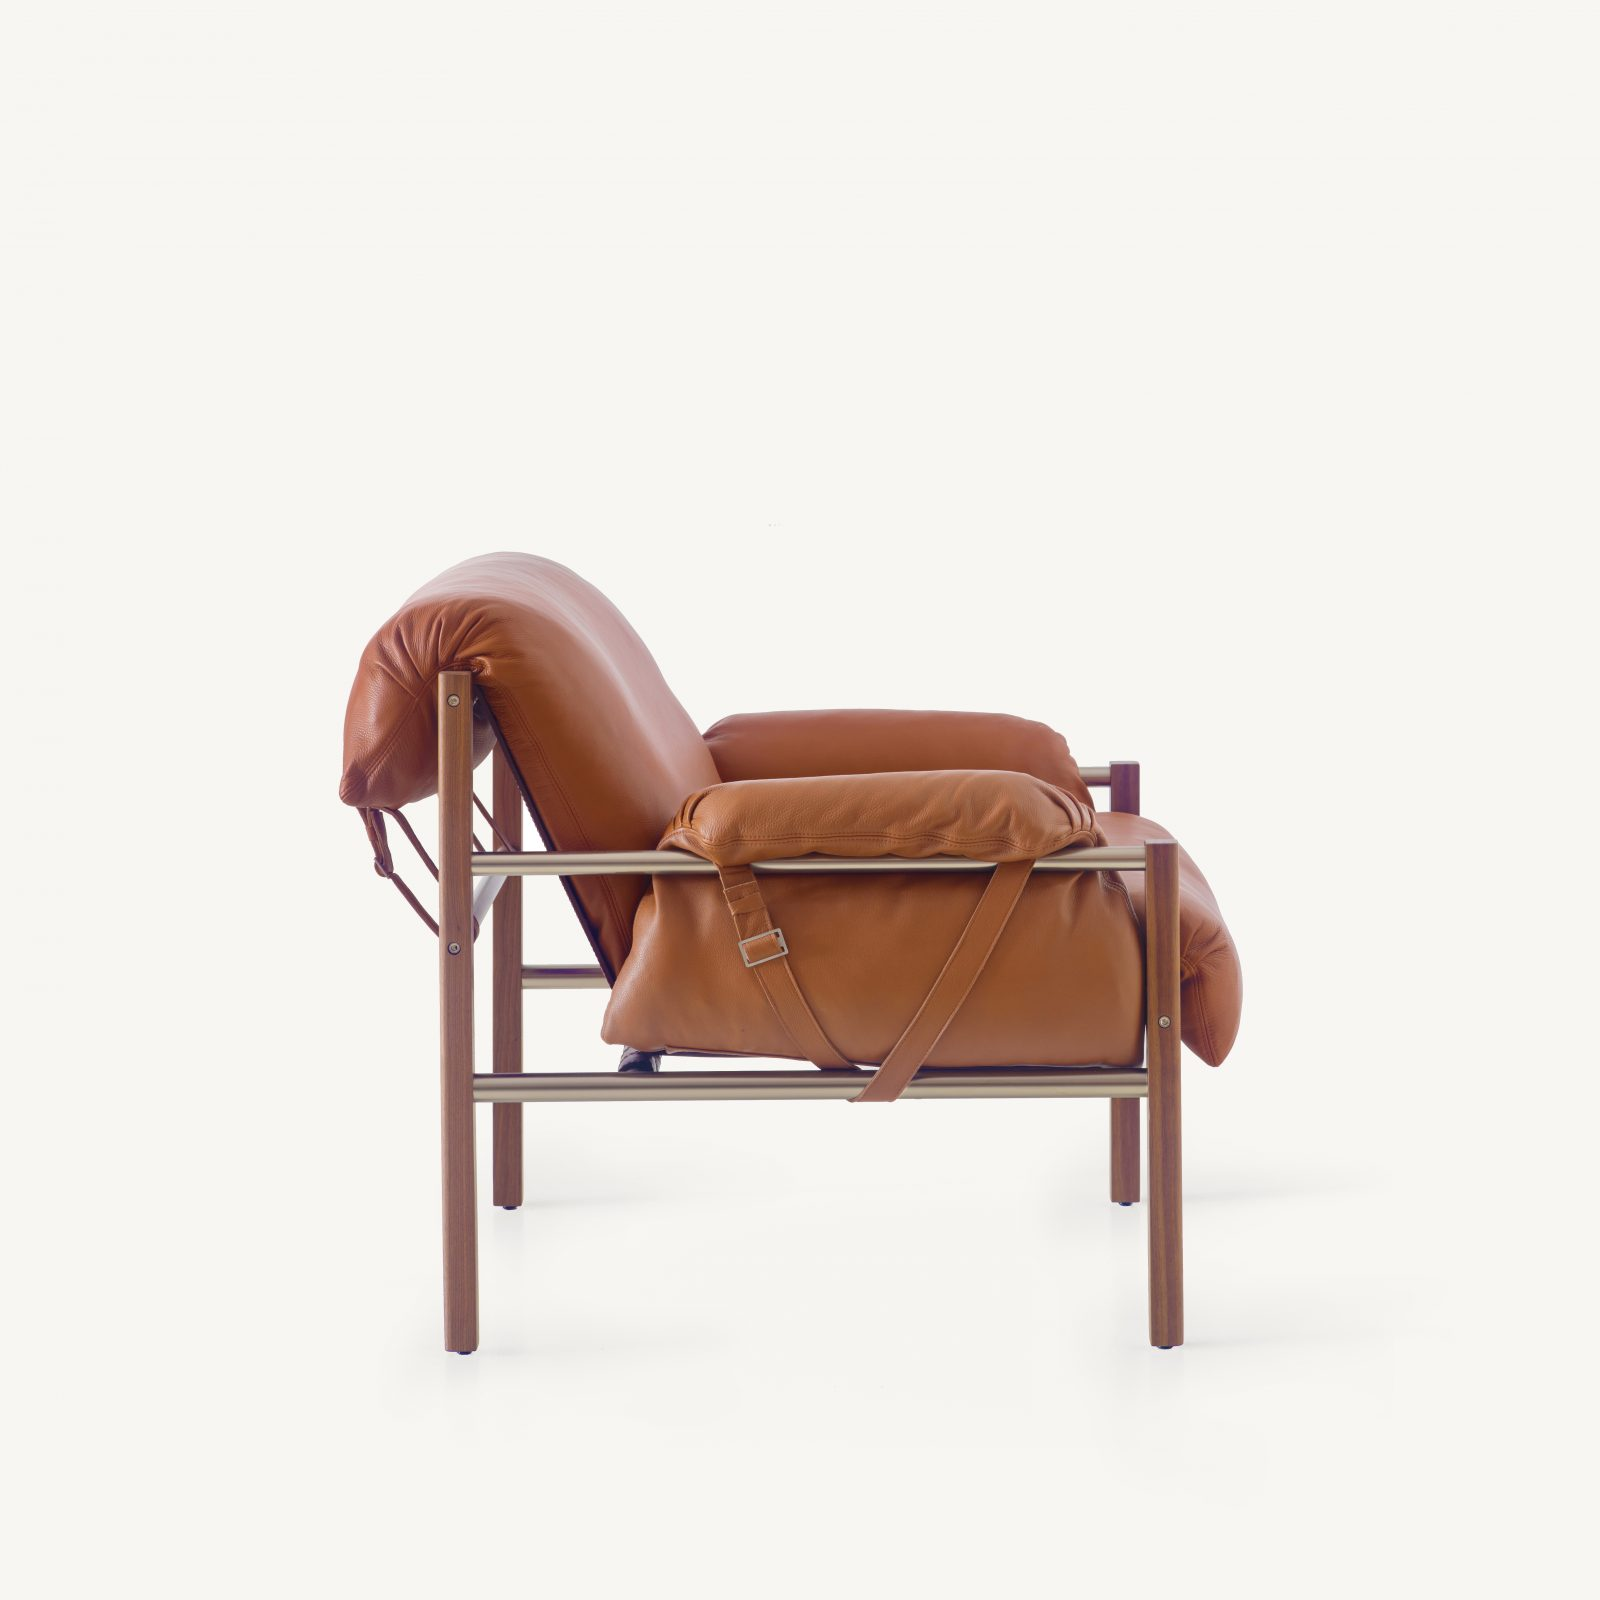 BassamFellows CB-570 Sling Club Chair in solid Walnut and plated steel, side, credit MARCO FAVALLI